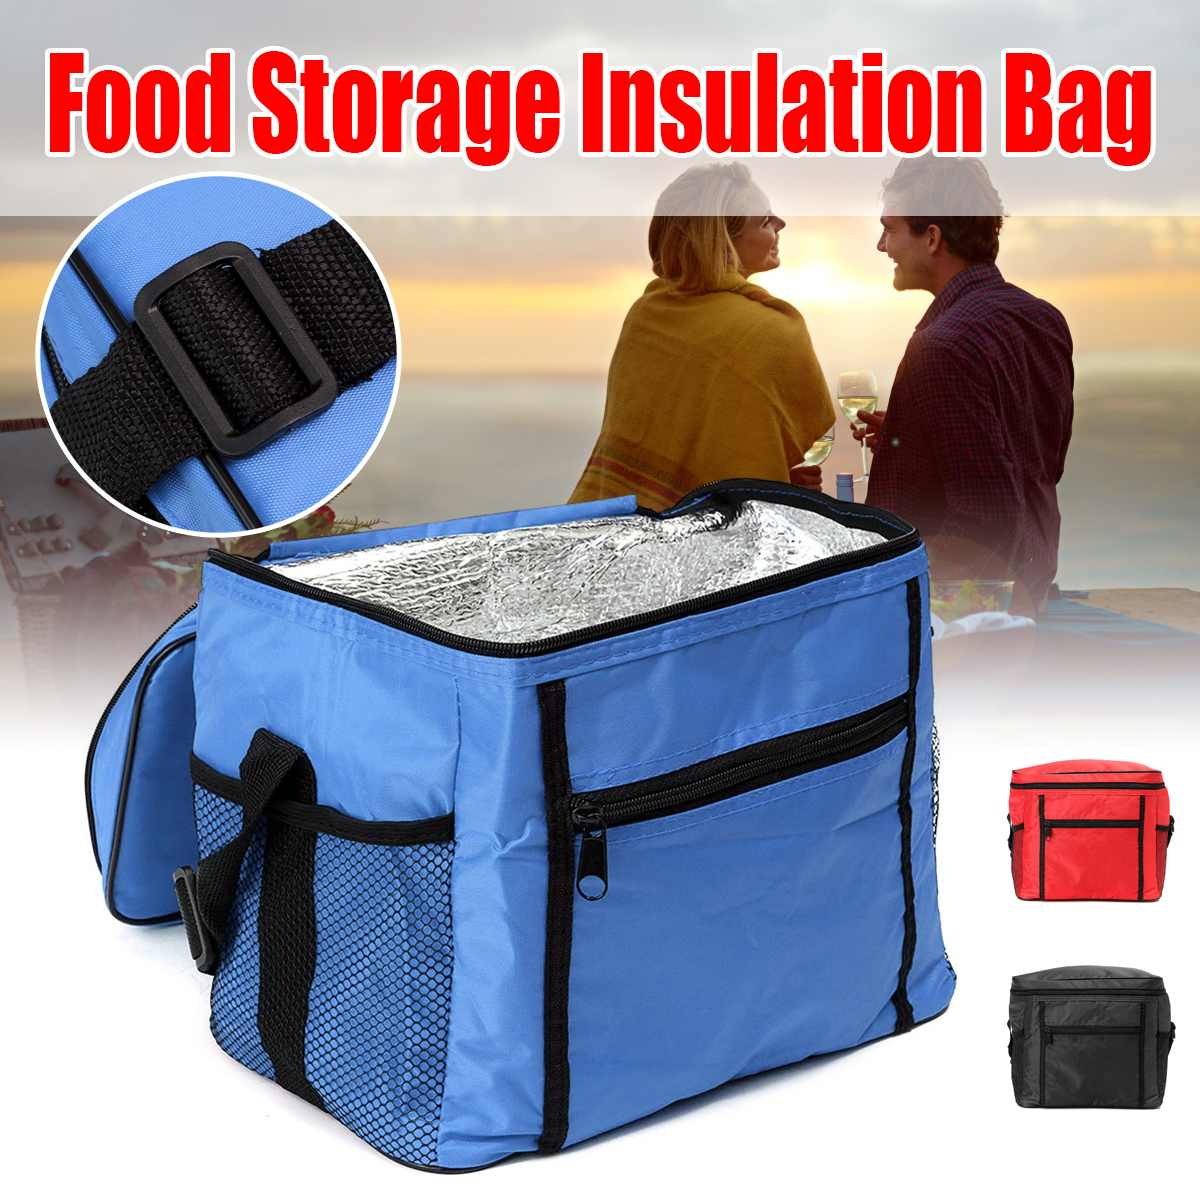 Ice Storage Bags Foldable Cooler Bag Lunch Picnic Bag Insulated Beach Food Thermal Bag Durable Portable Outdoor Boxes Free RU